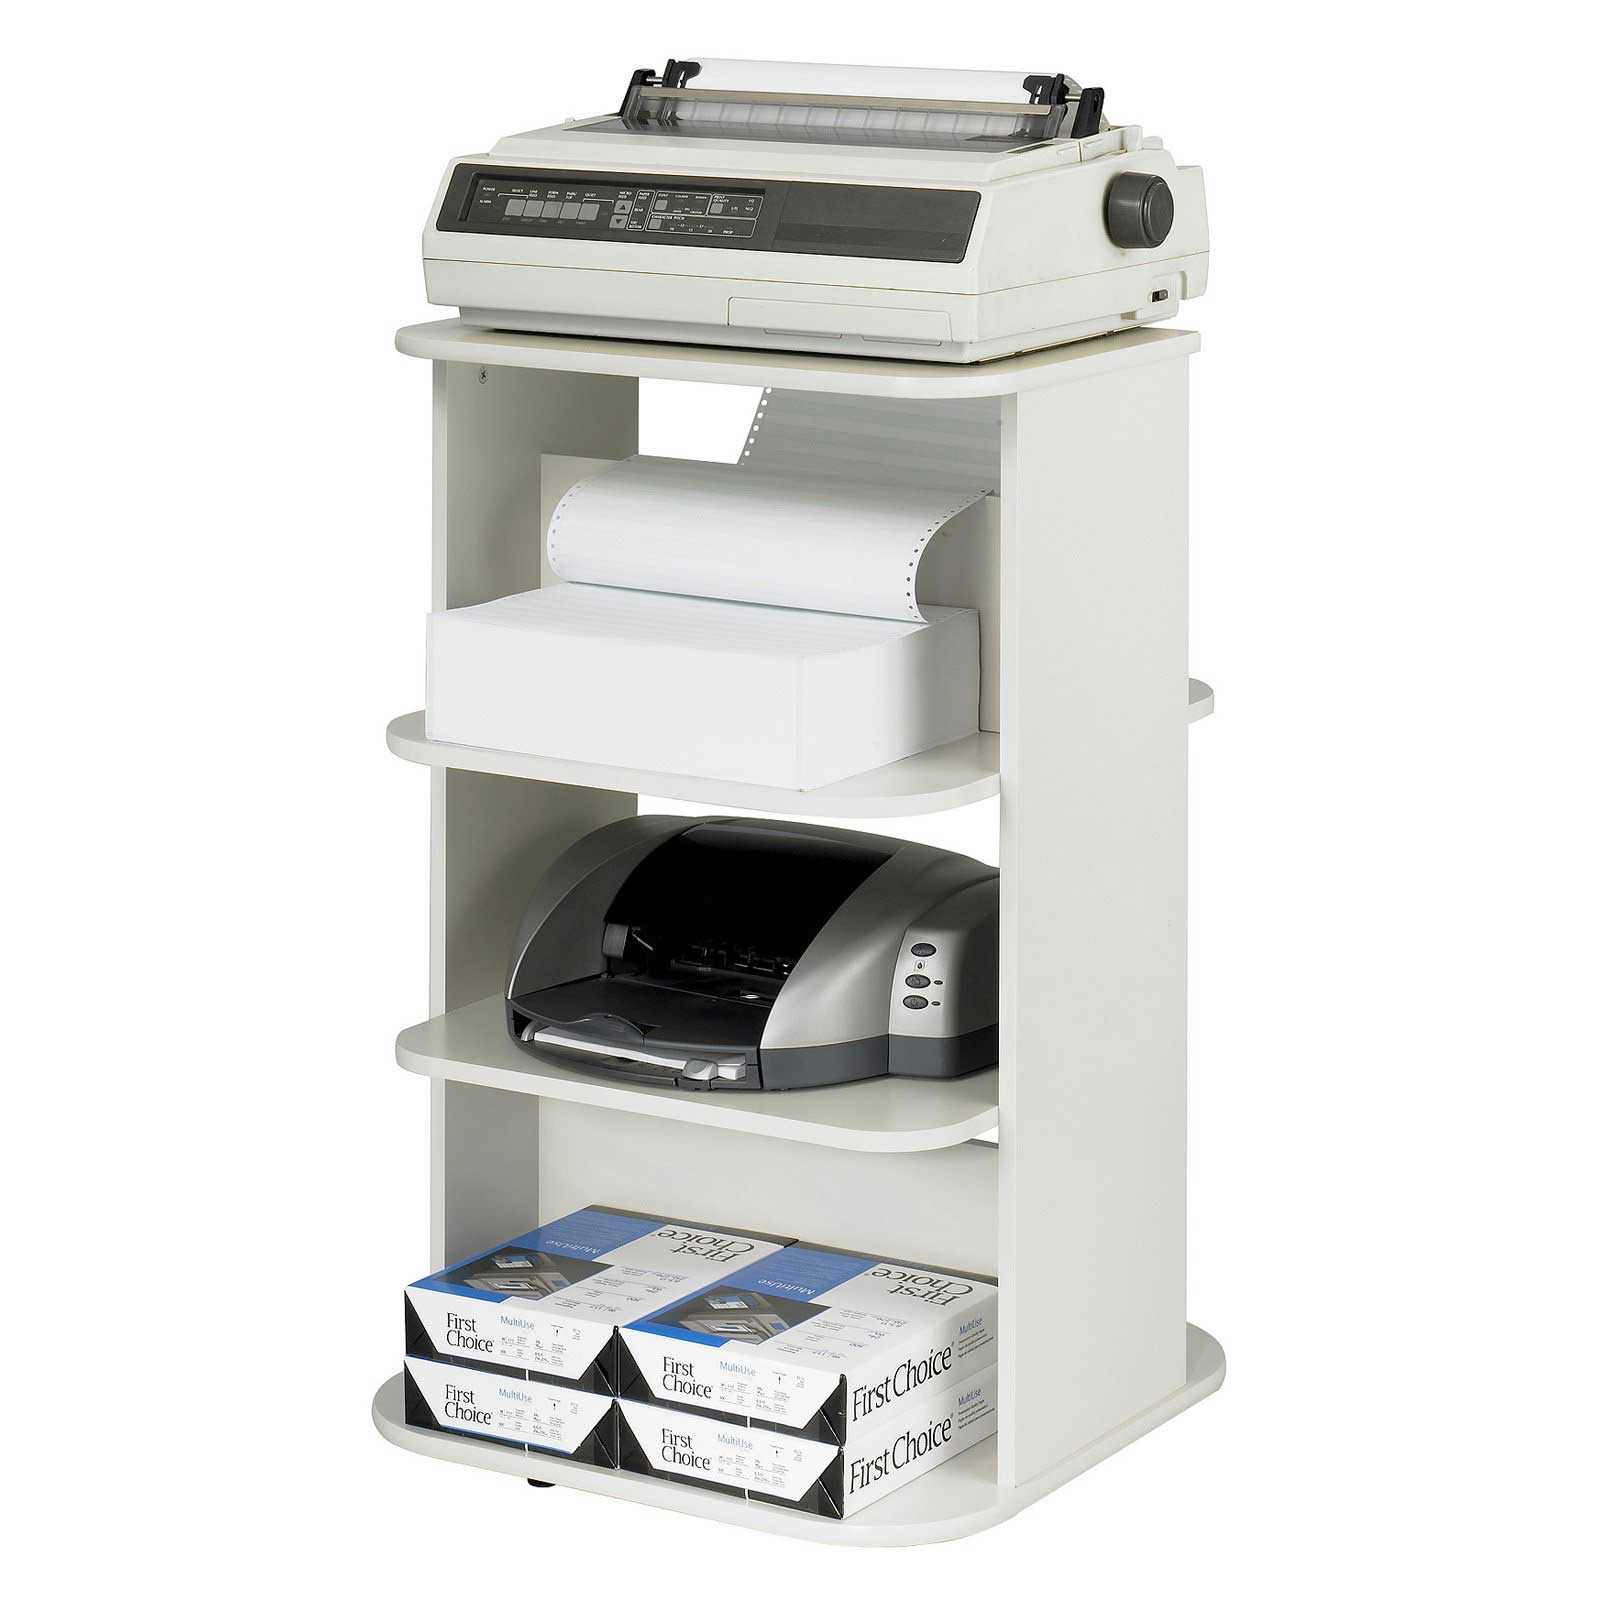 thesis printer You must make sure that your thesis meets the university's formatting and binding requirements as we are unable to send your thesis for examination if it does not comply with these requirements.